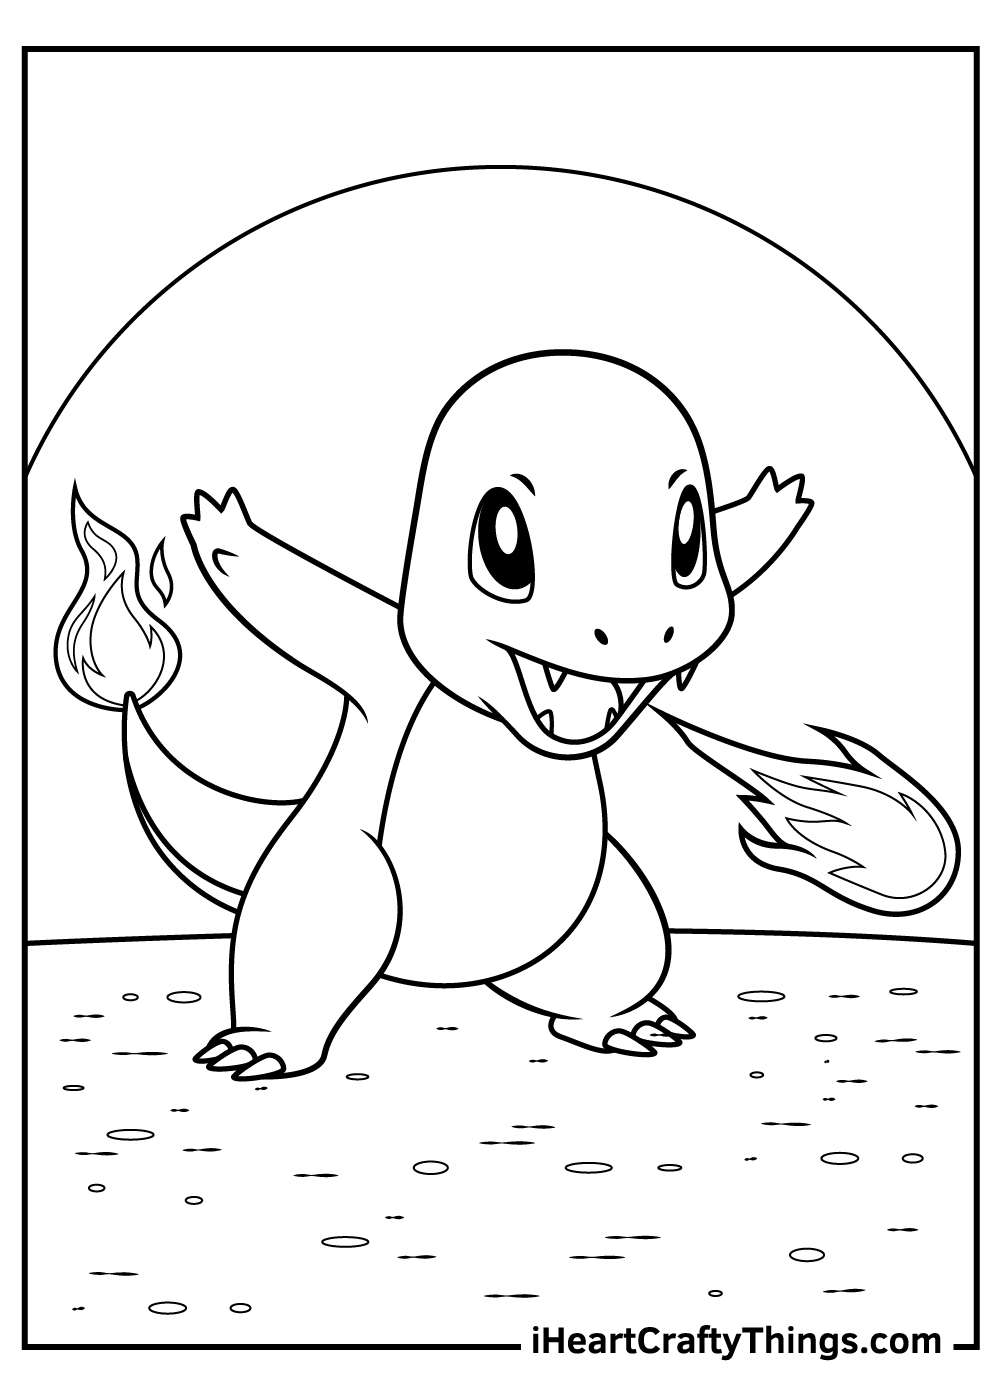 pikachu and charmander coloring pages free printable